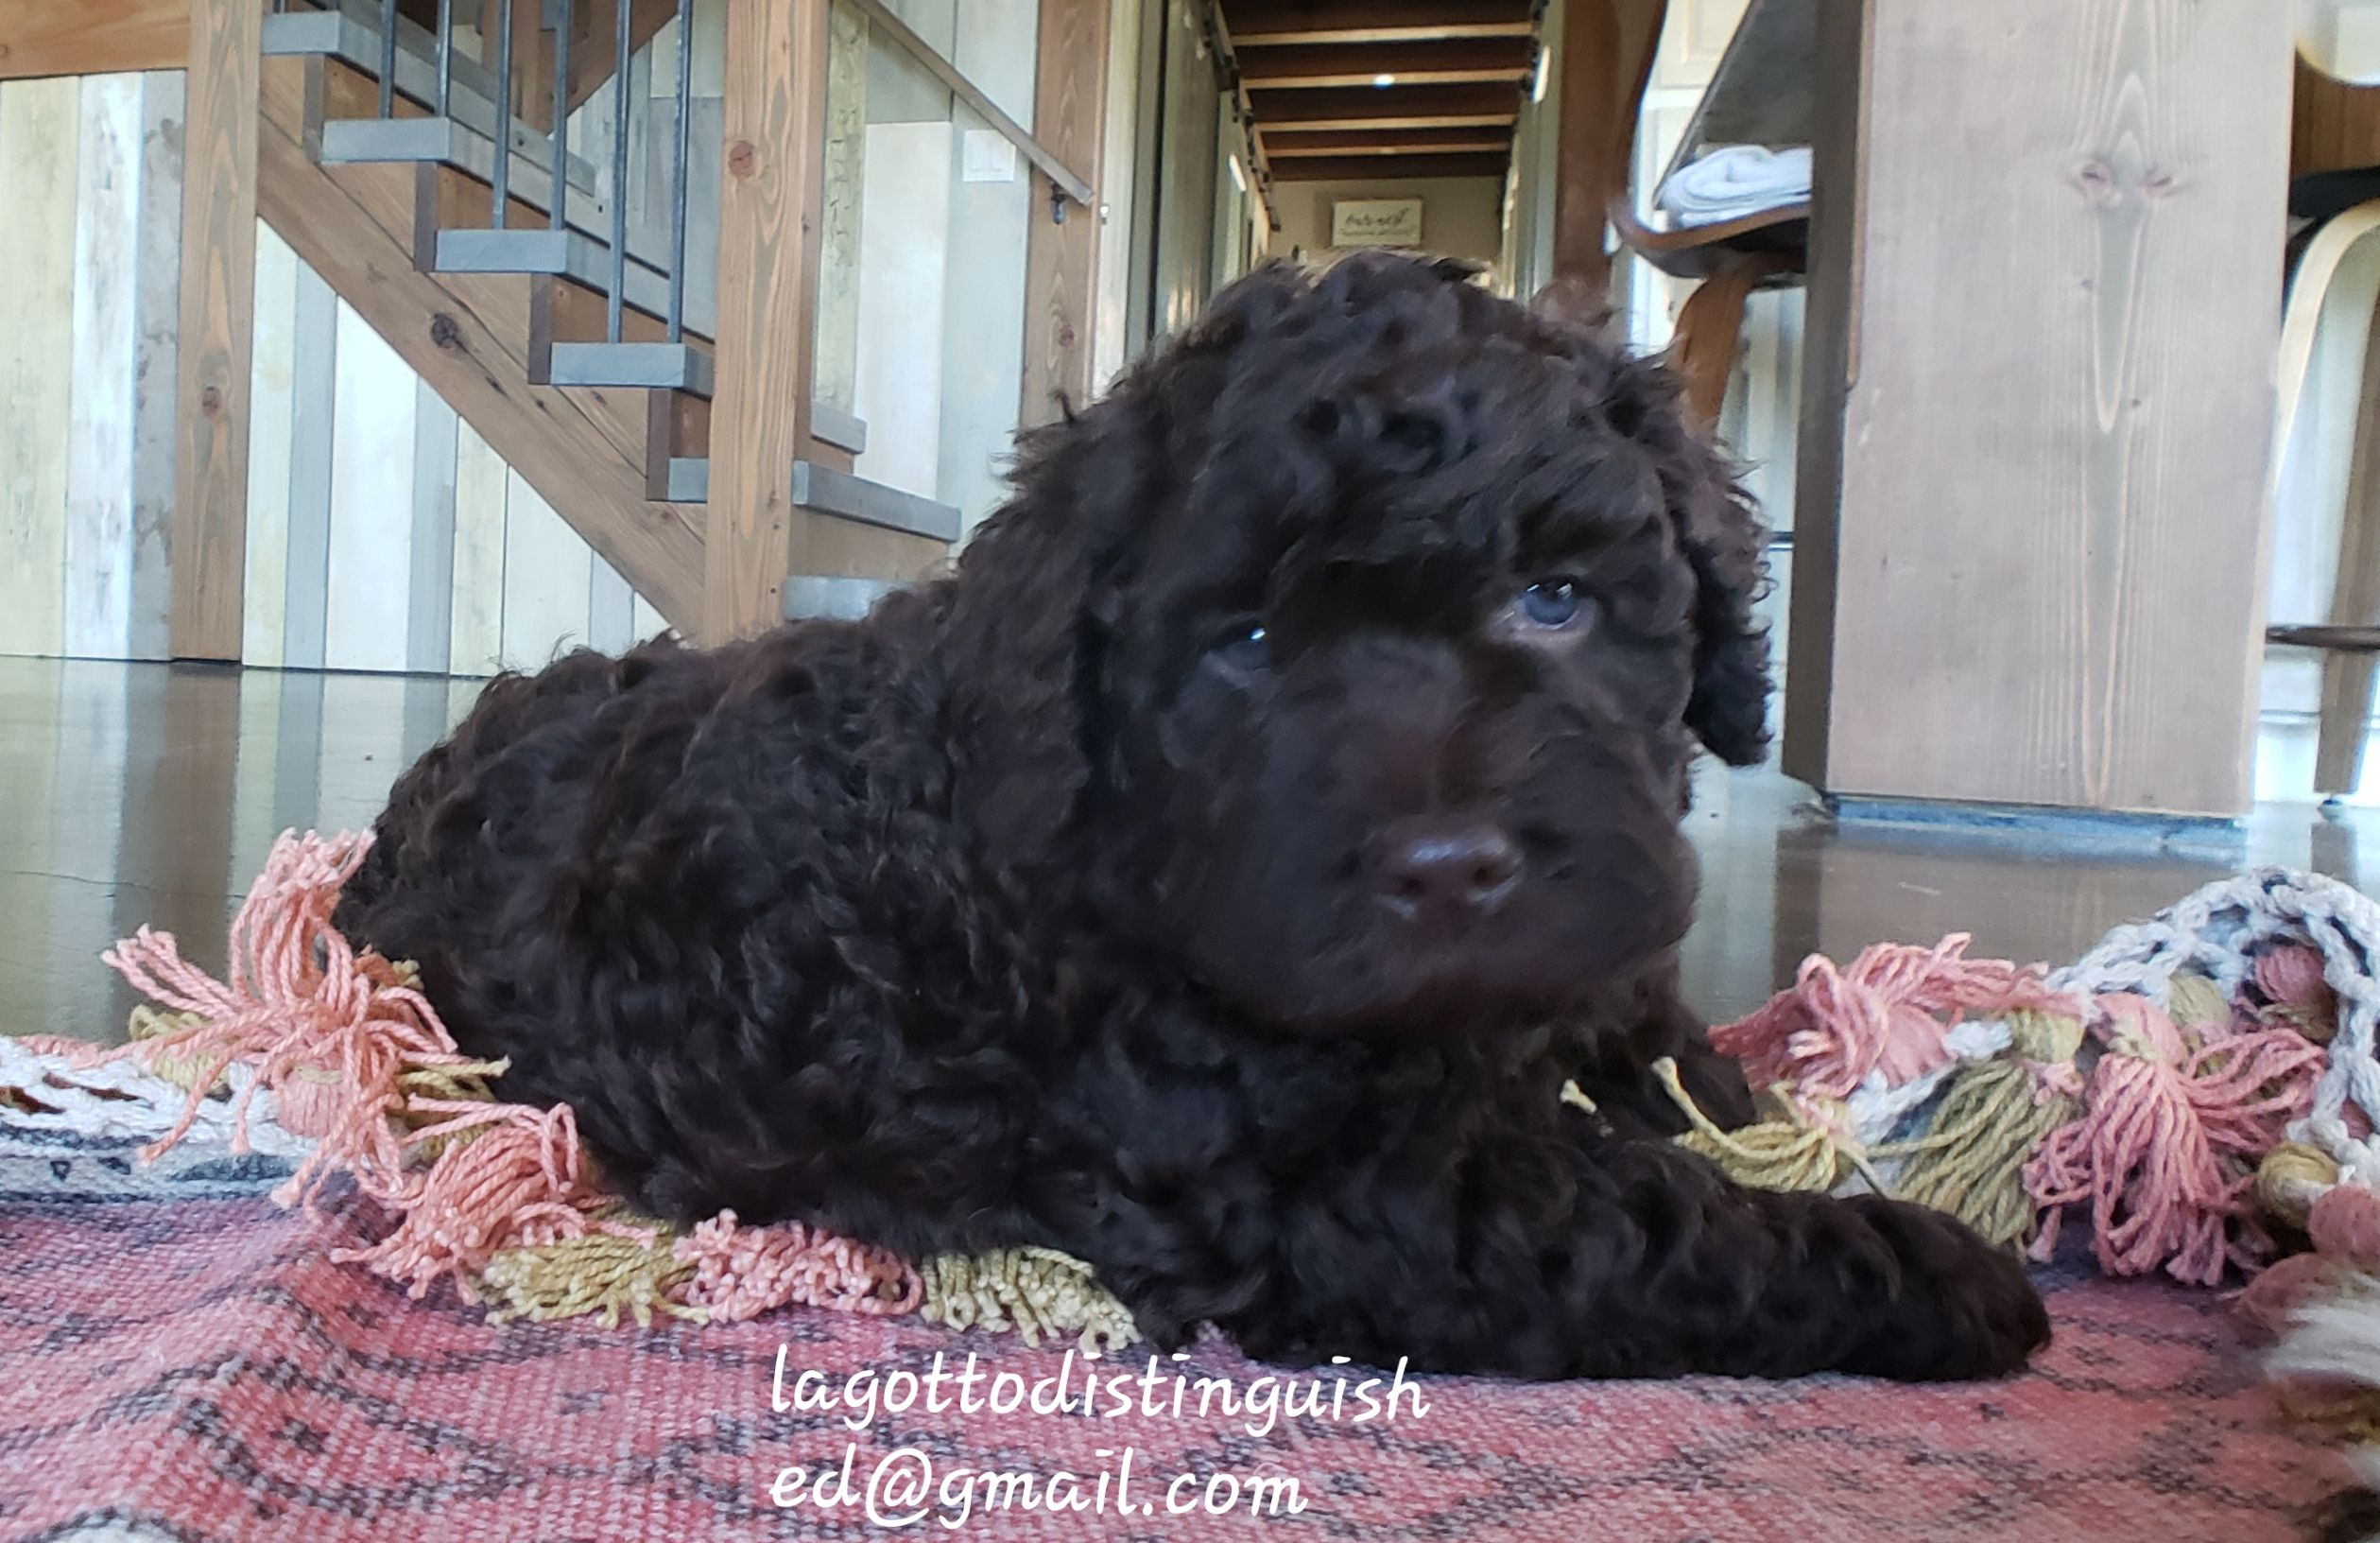 Lagotto Puppies For Sale Puppies Puppies For Sale Rare Breed